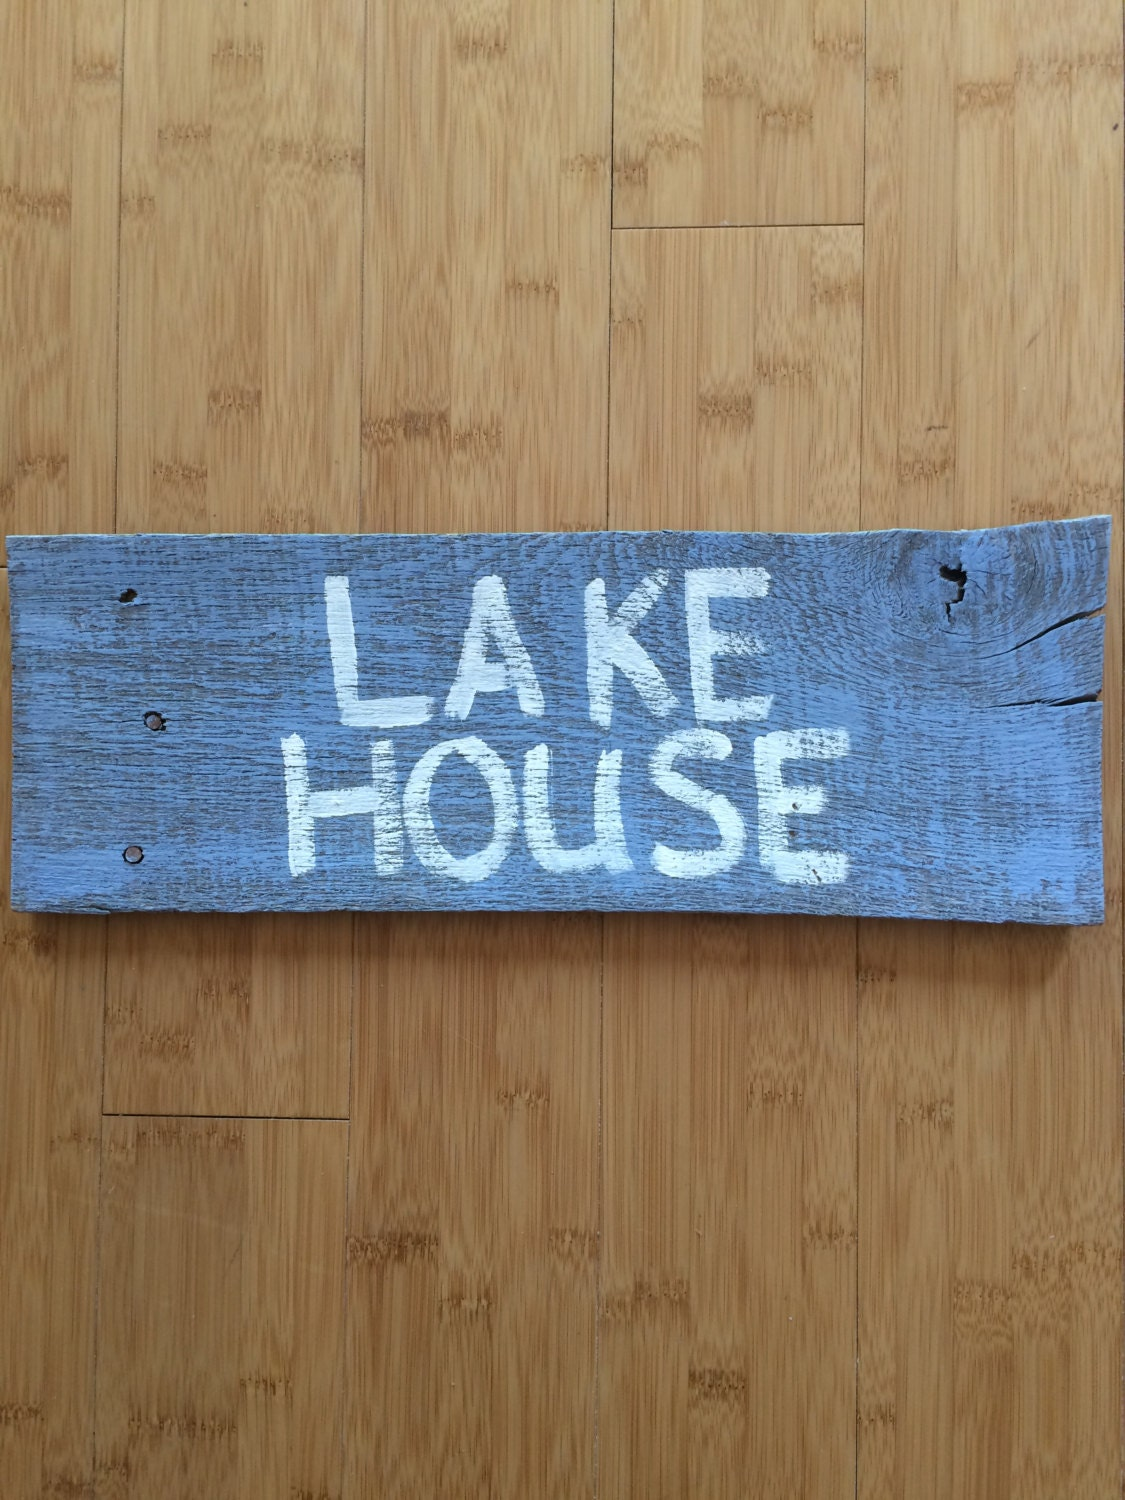 Wall Decor For Lake House : Lake house distressed sign pallet wall decor by